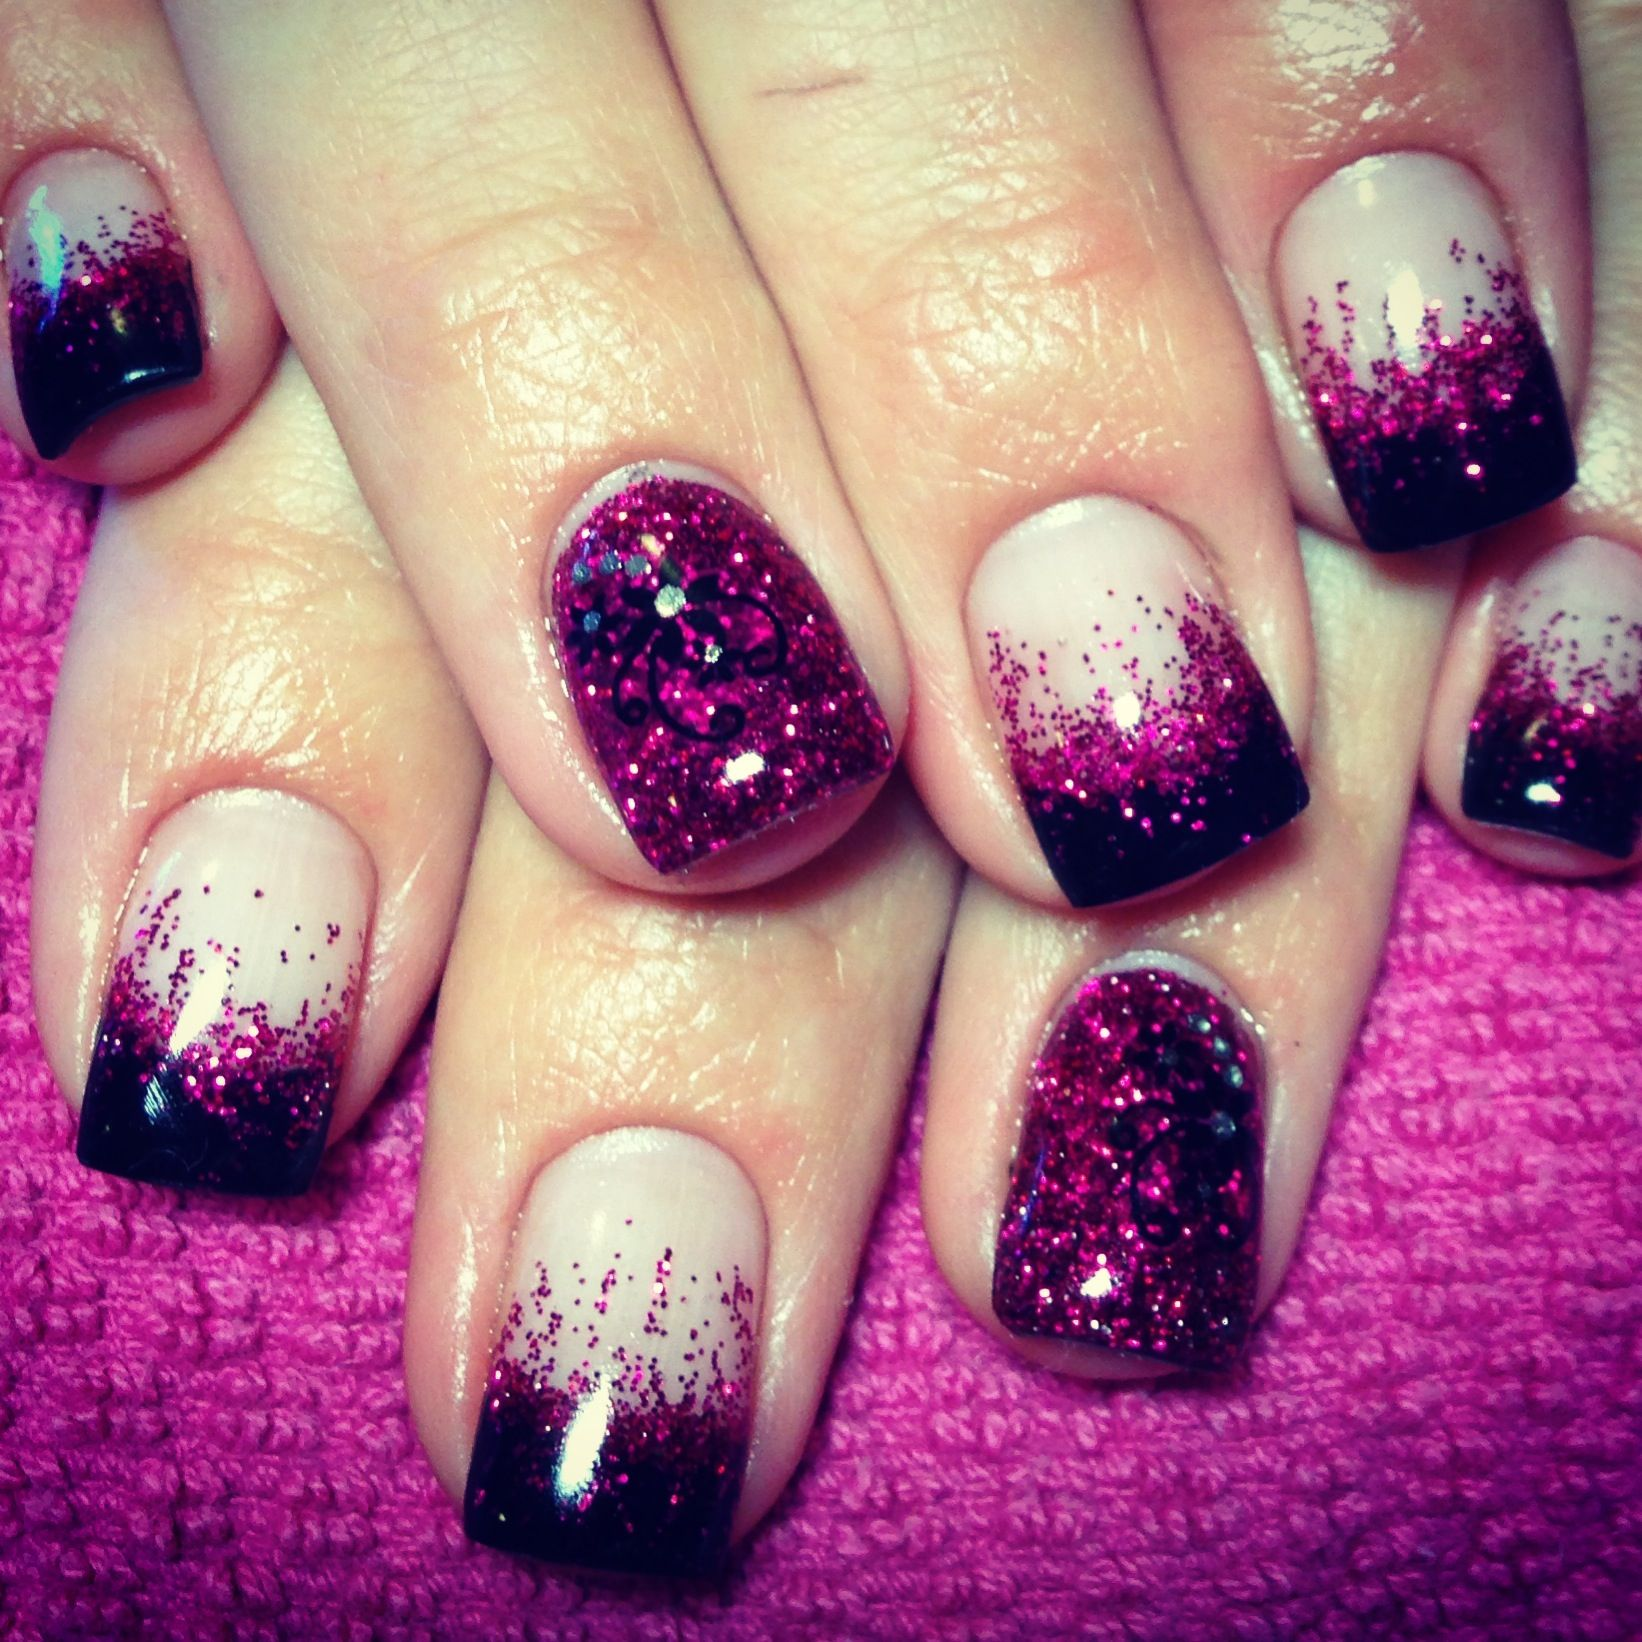 This Is Cool Black Tip Pink Glitter Fade Gel Nails With Glitter Feature Nail And Flower Decals Glitter Gel Nails Simple Nails Glitter Nails